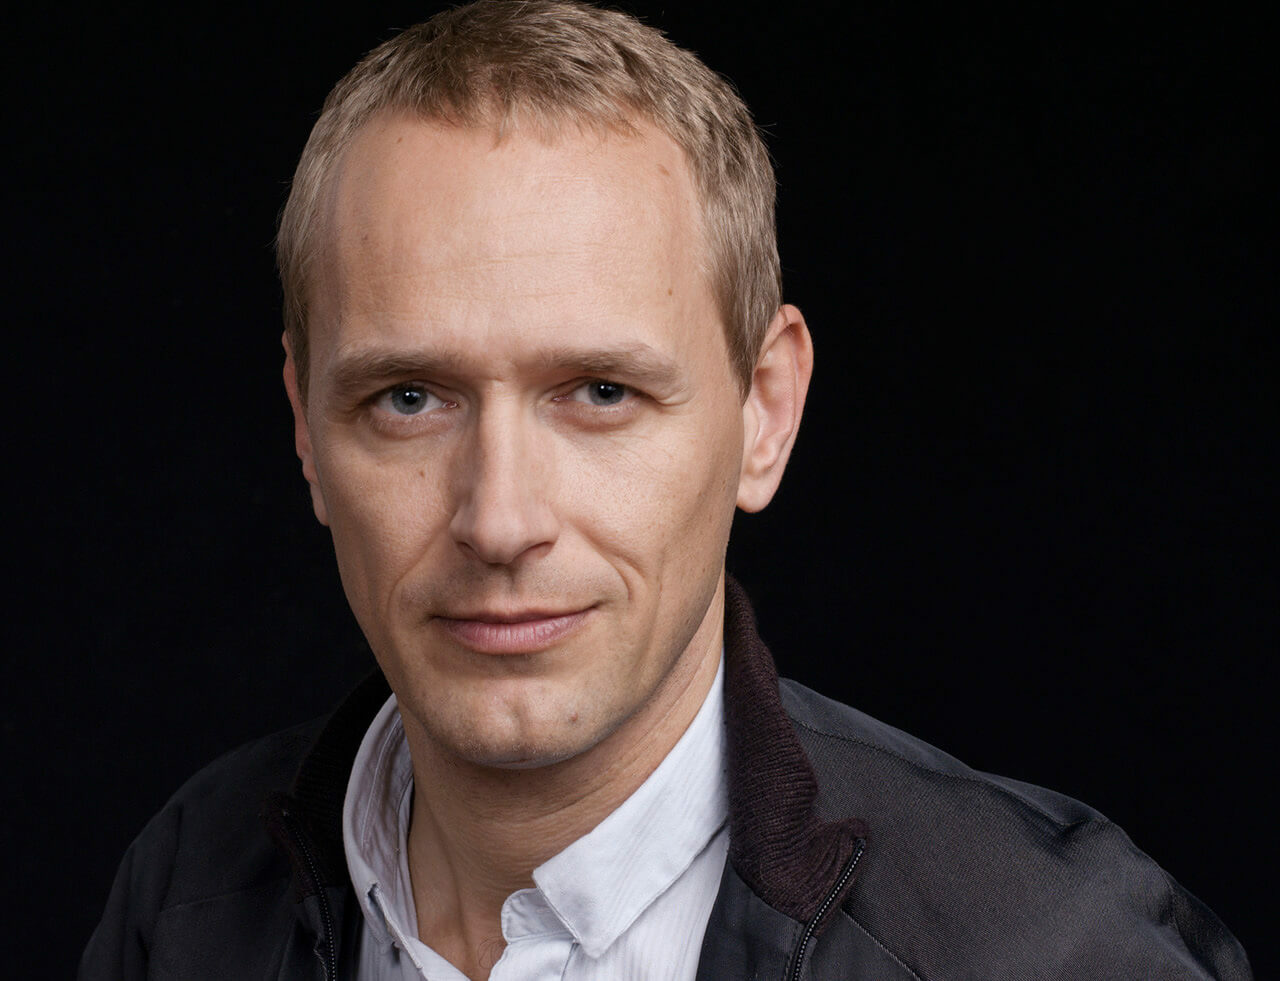 Christian Jankowski appointed Curator of Manifesta 11